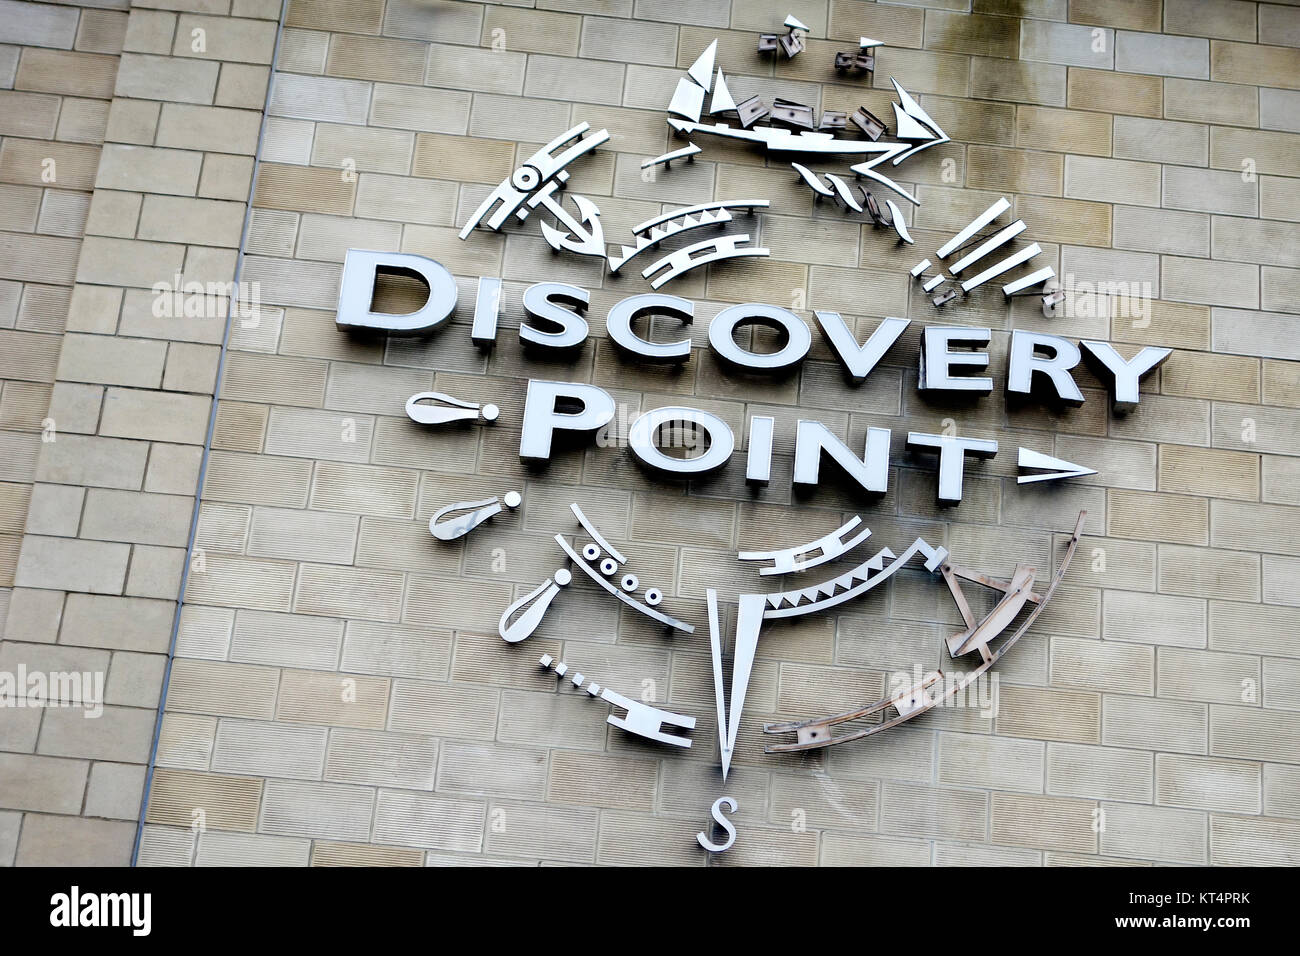 Discovery Point, Dundee. - Stock Image